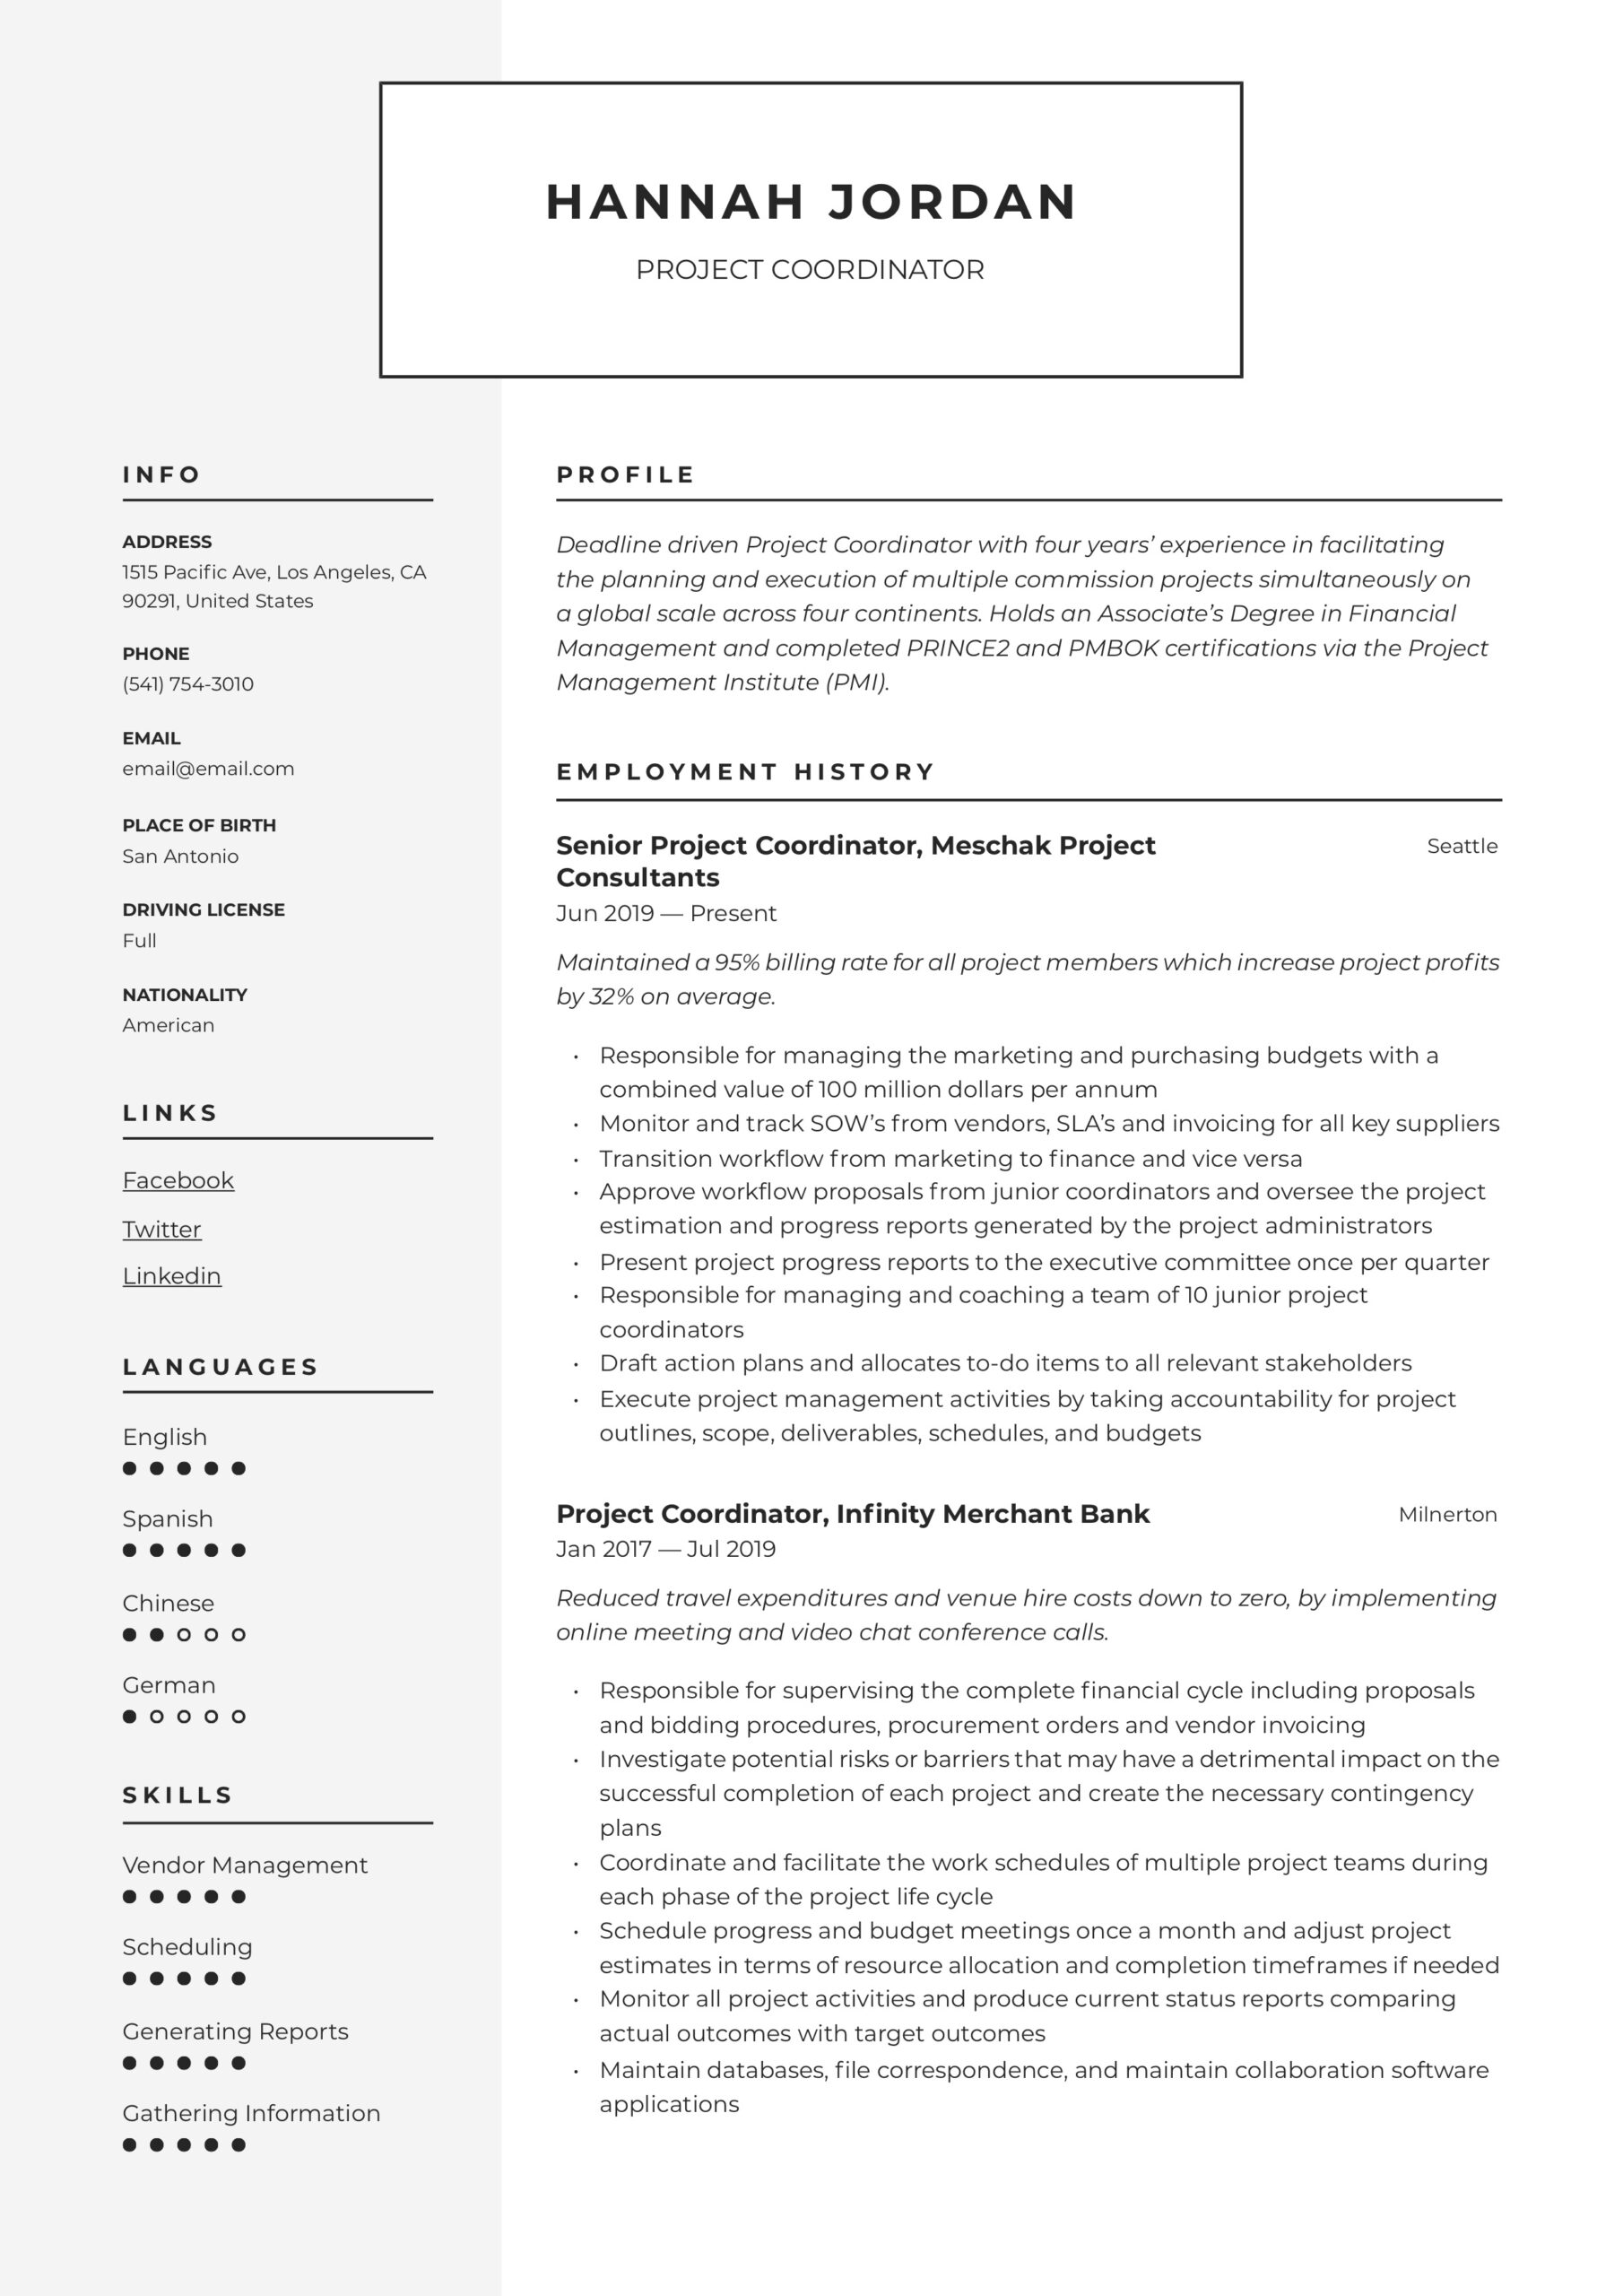 project coordinator resume writing guide examples employee engagement clinic manager fire Resume Employee Engagement Coordinator Resume